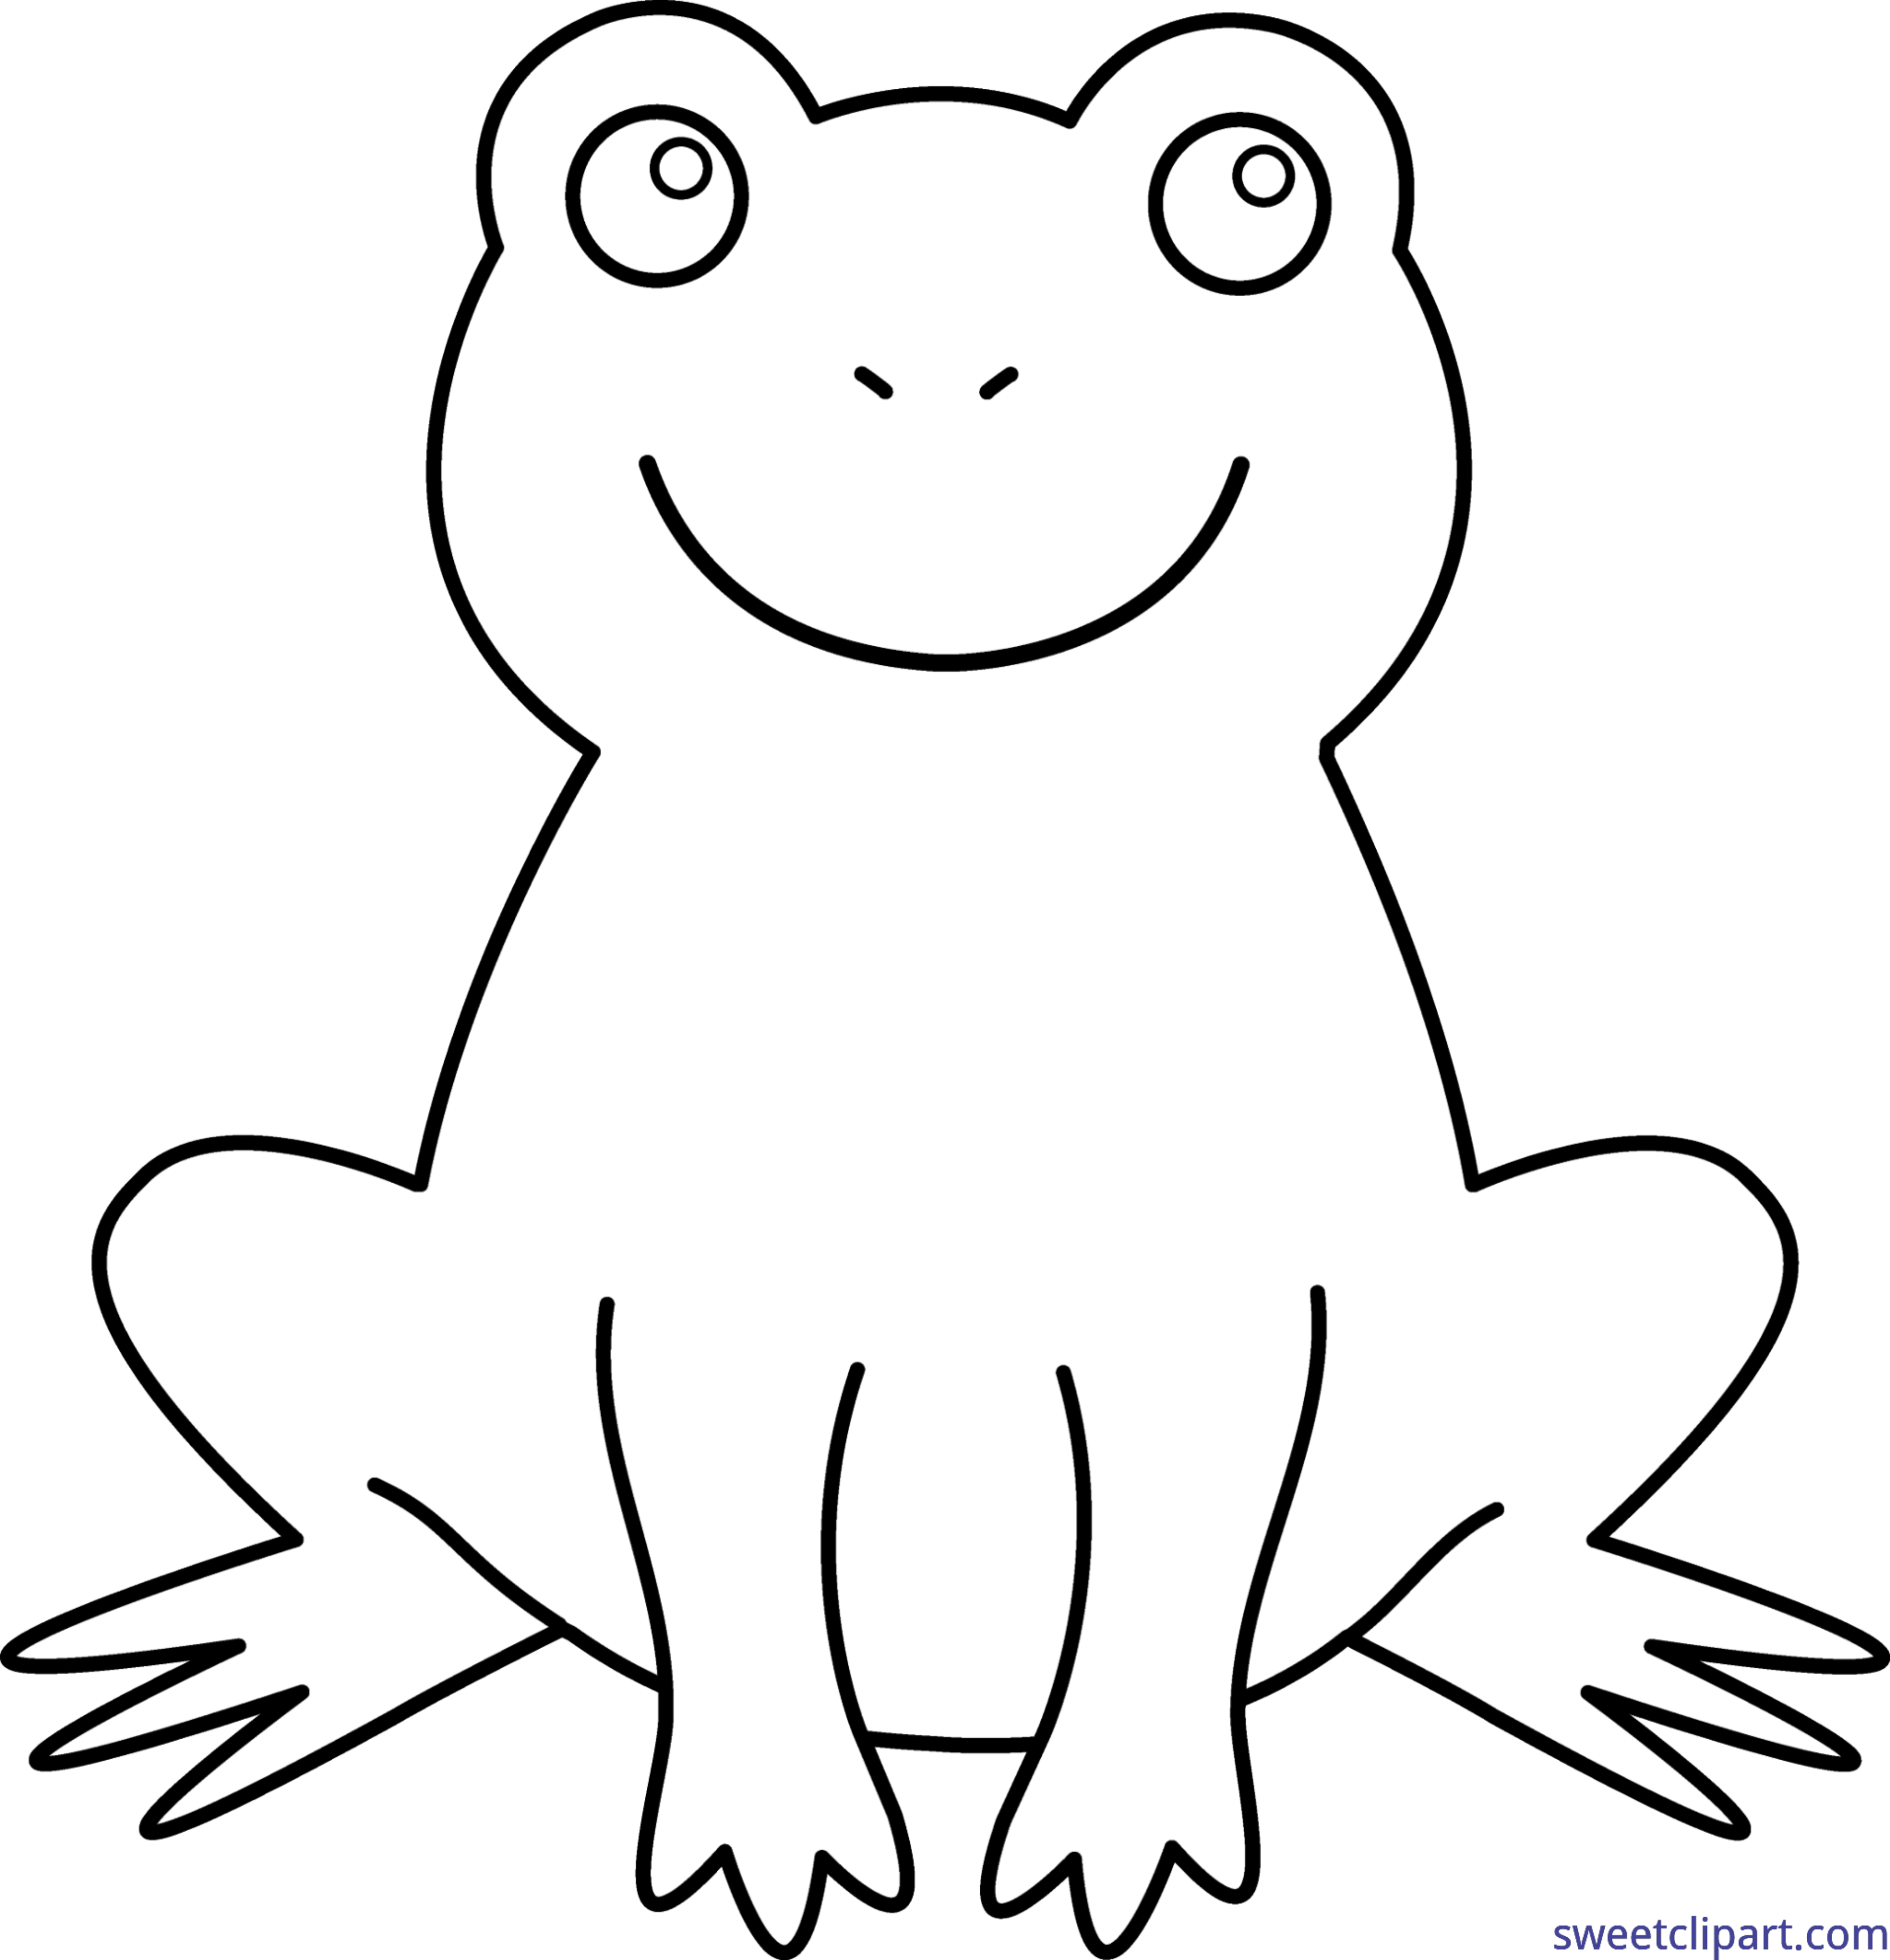 Frogs drawing medieval. Frog lineart for